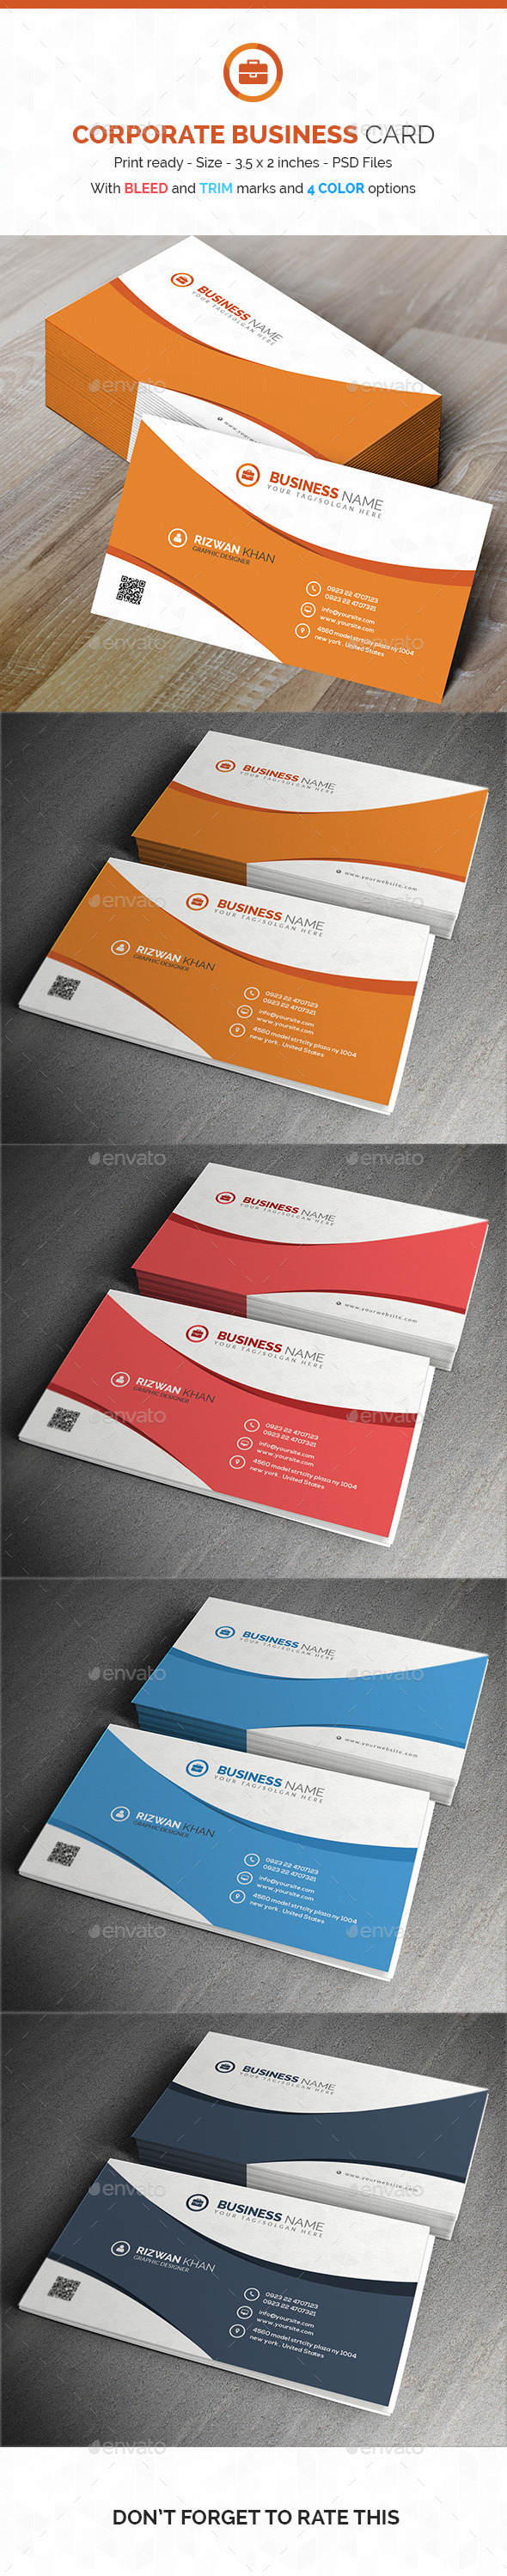 GraphicRiver Corporate Business Card PSD Template 10665473